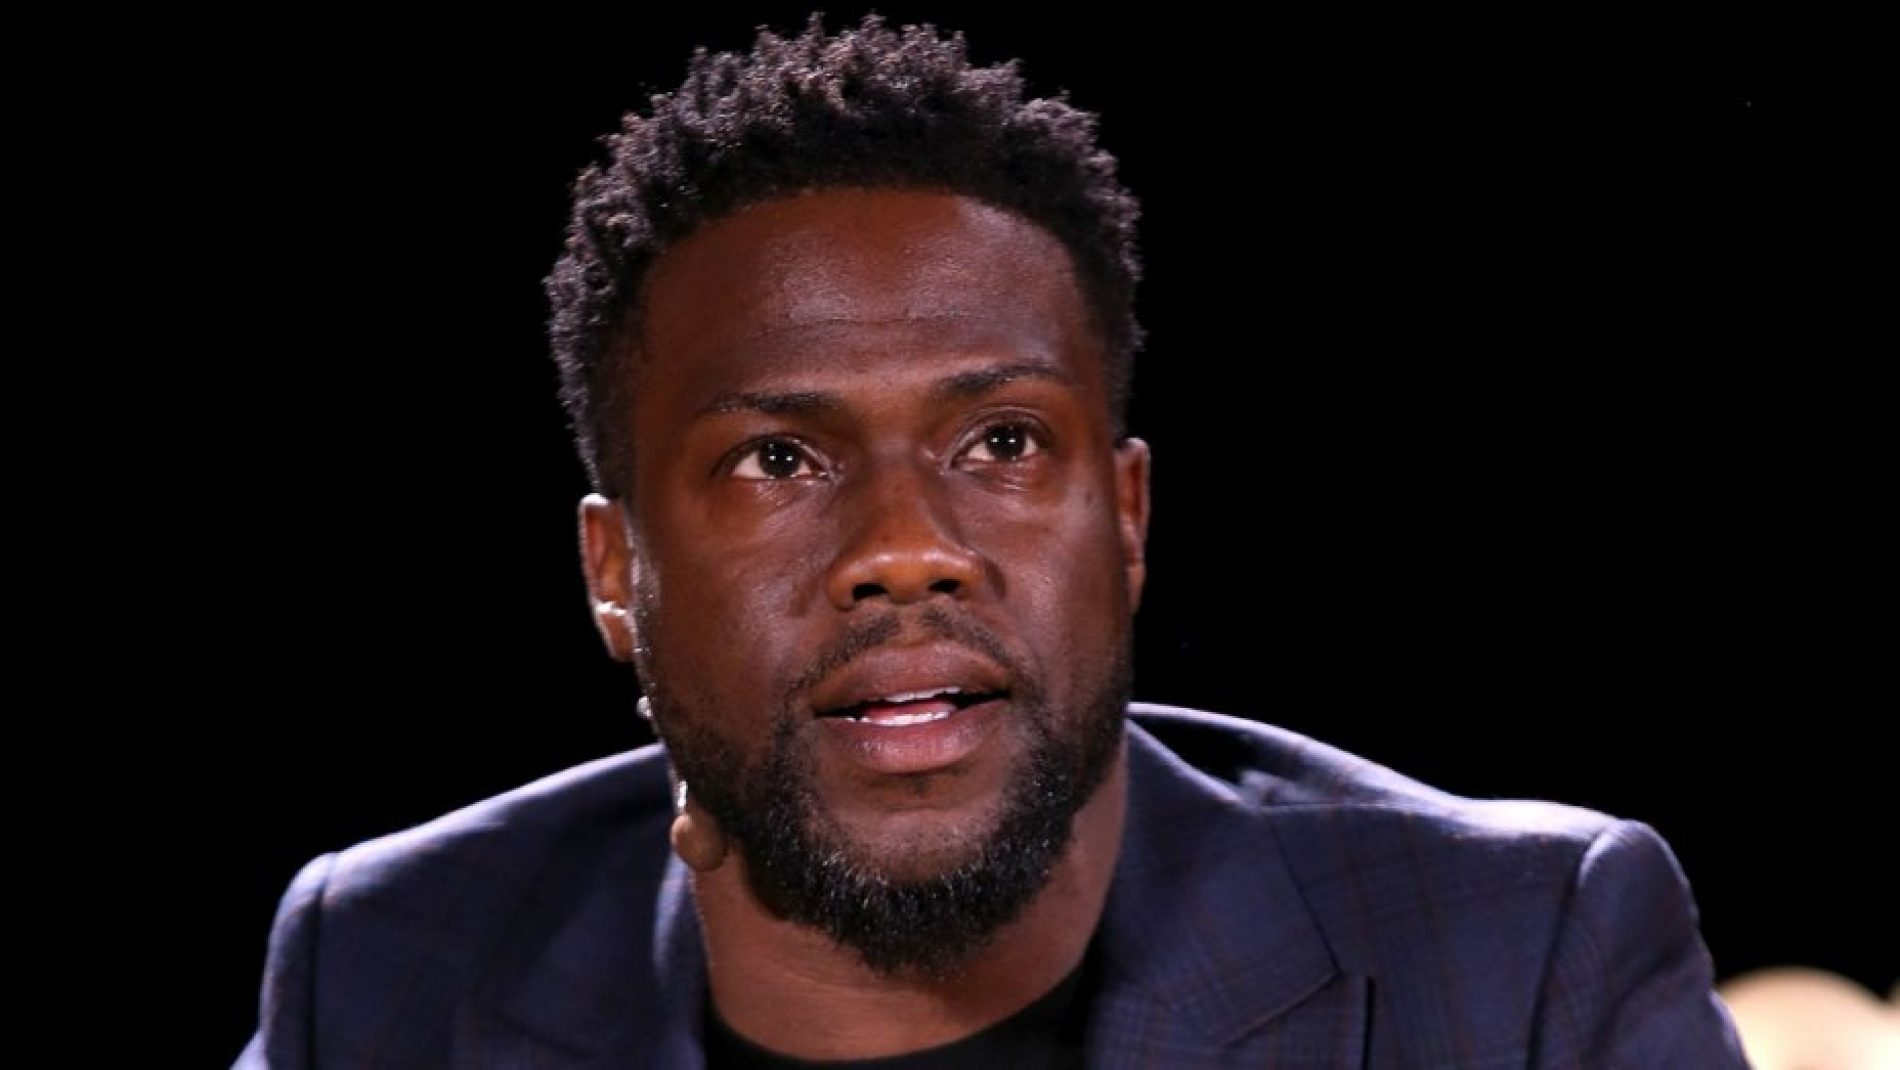 """I Don't Have A Homophobic Bone In My Body."" Kevin Hart Ponders Homophobic Tweets And Apologizes Again to LGBTQ Community"